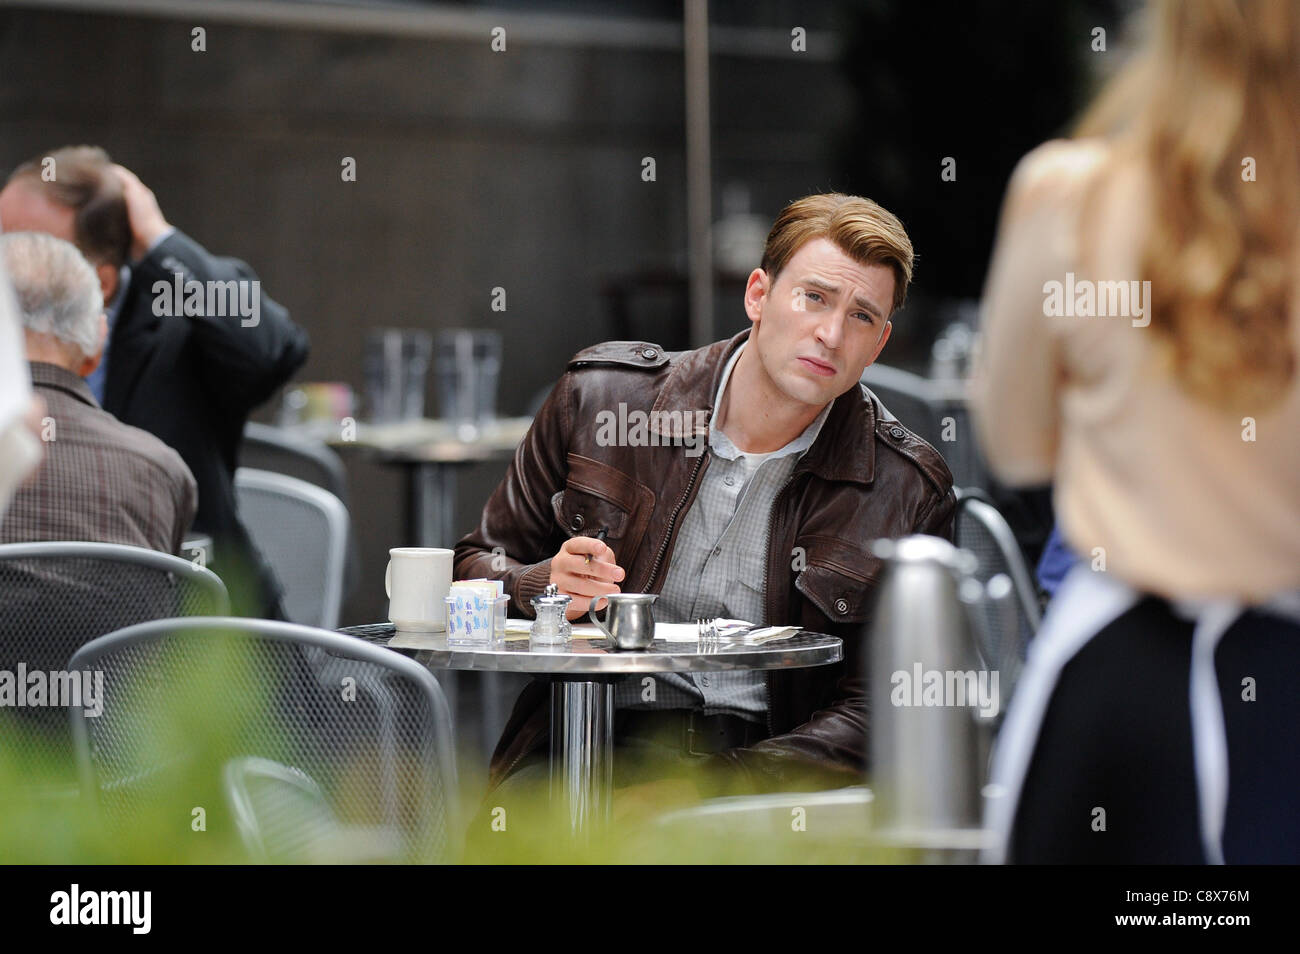 Chris Evans films scene ''The Avengers'' movie set Pershing Square restaurant out about CELEBRITY - Stock Image